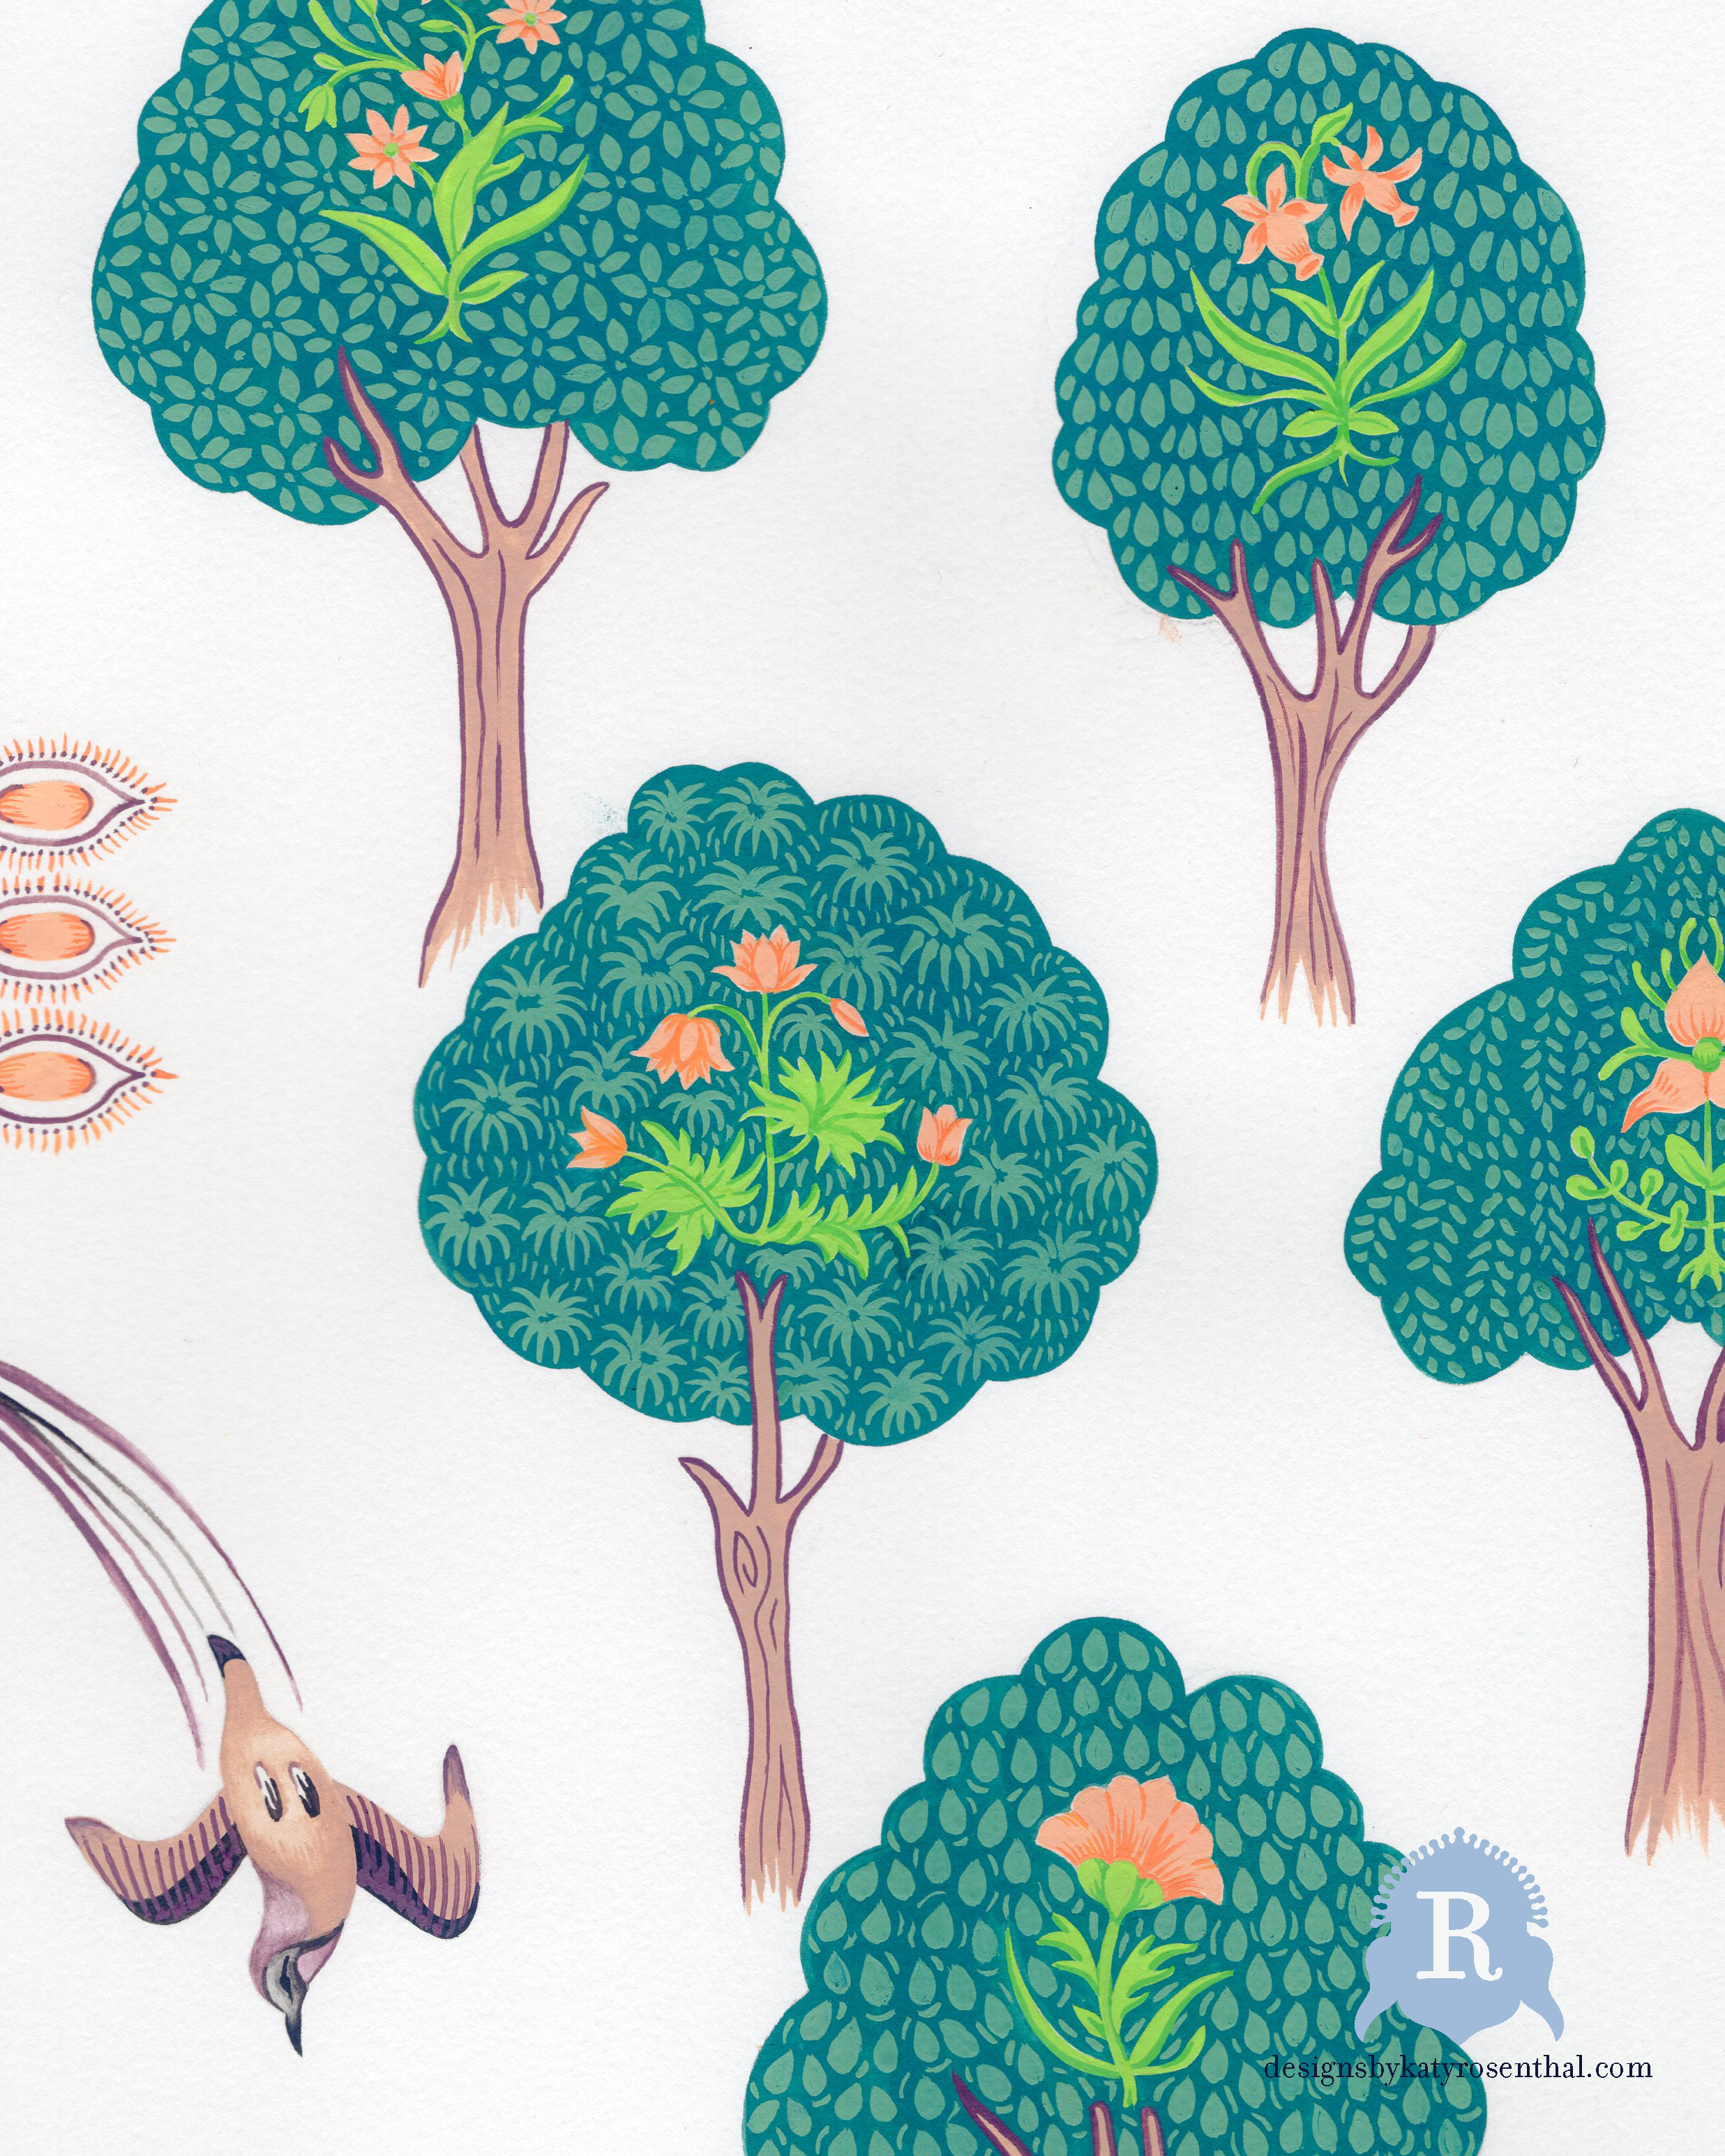 A cropped section of my original paintings that were then scanned in and arranged to create the design for The 'Chai Botanical' Scarf.